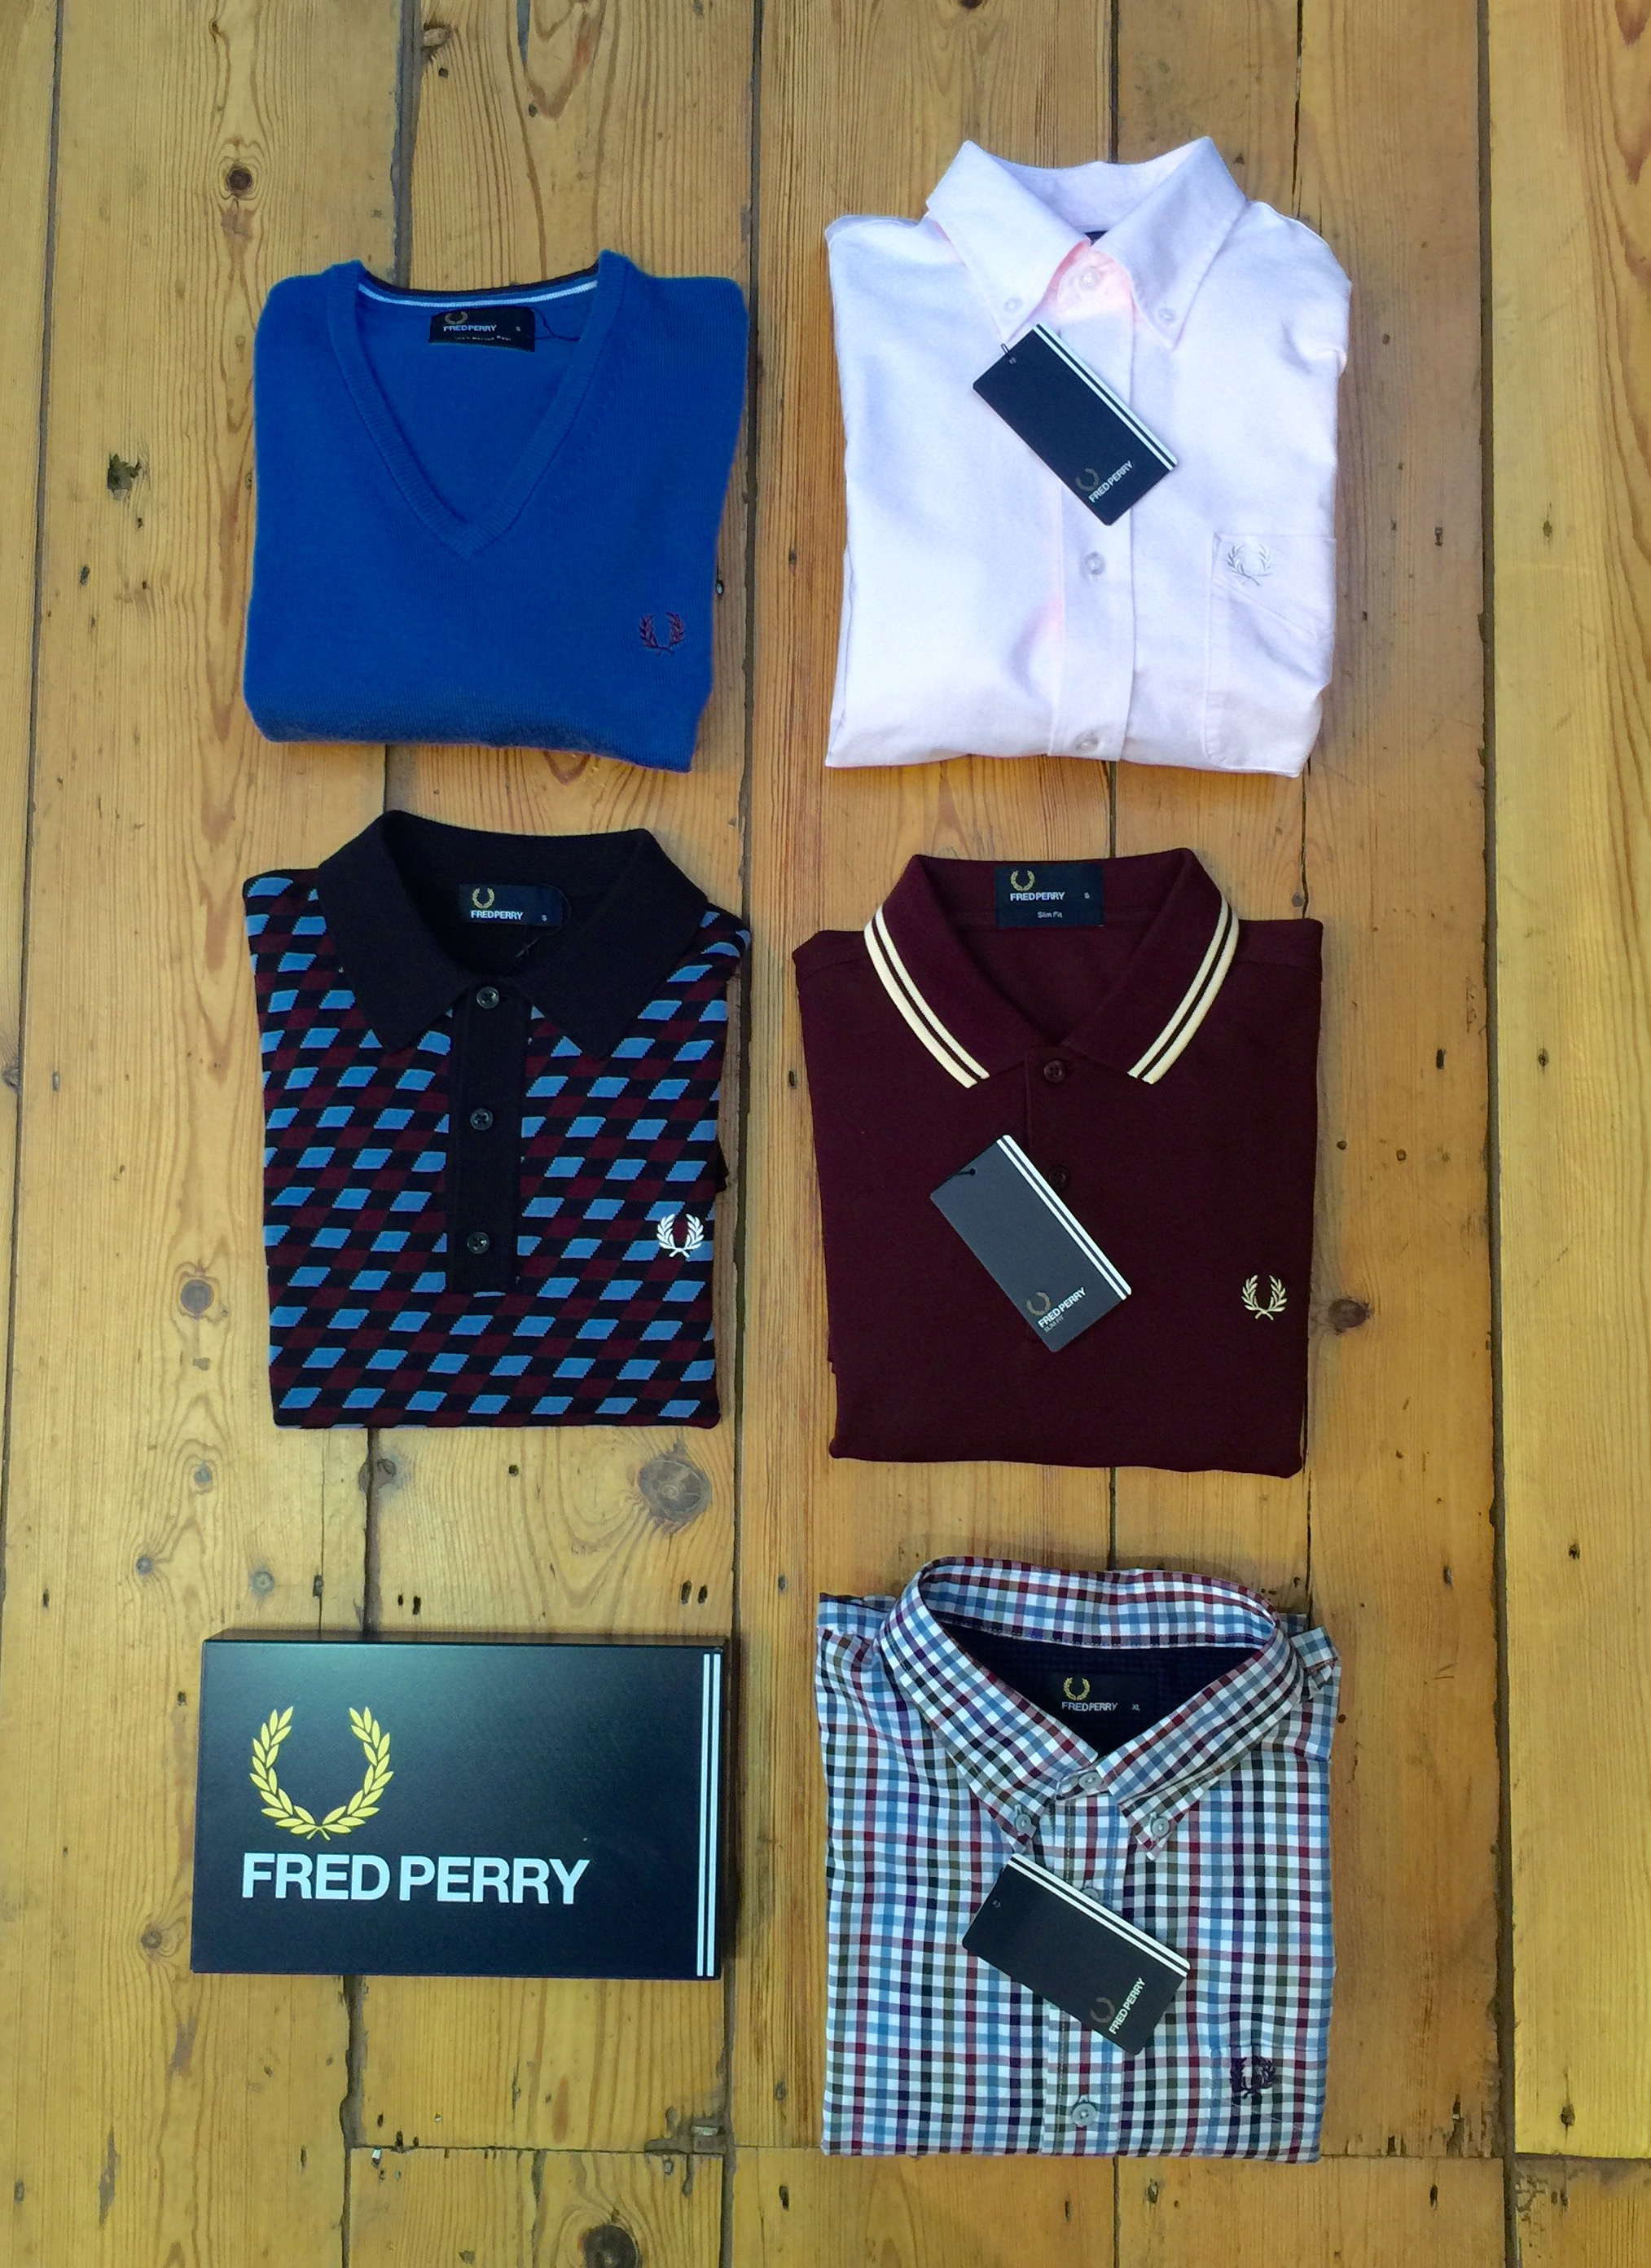 Fred Perry SS16.JPG